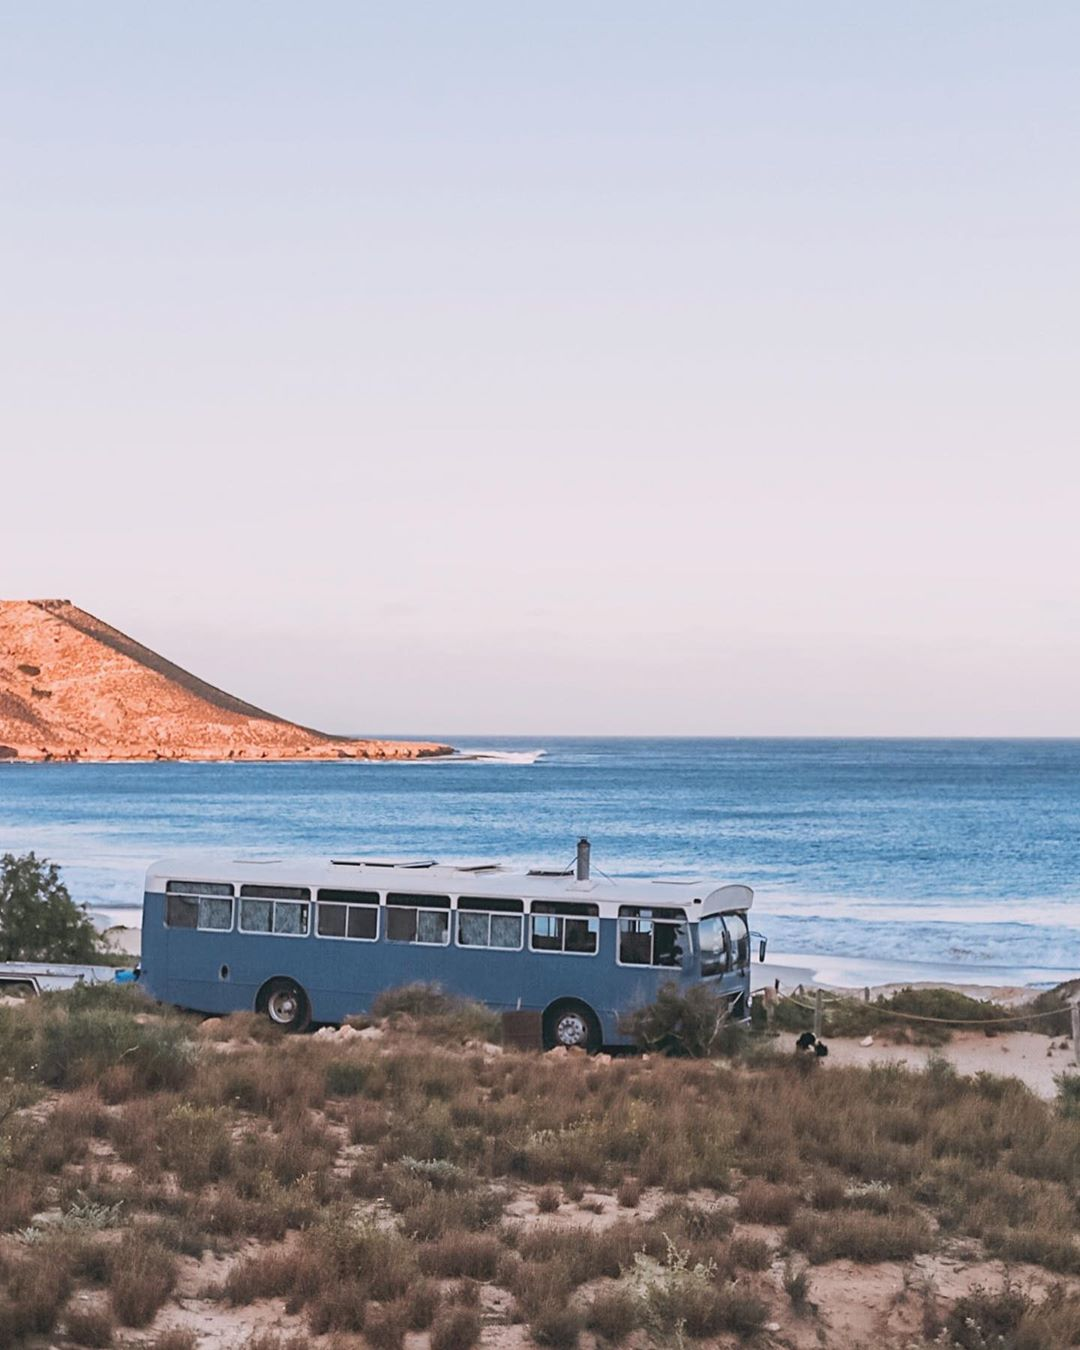 71286744 2336744523117982 1419965244428106503 n - Australian couple convert old city bus into colourful motorhome